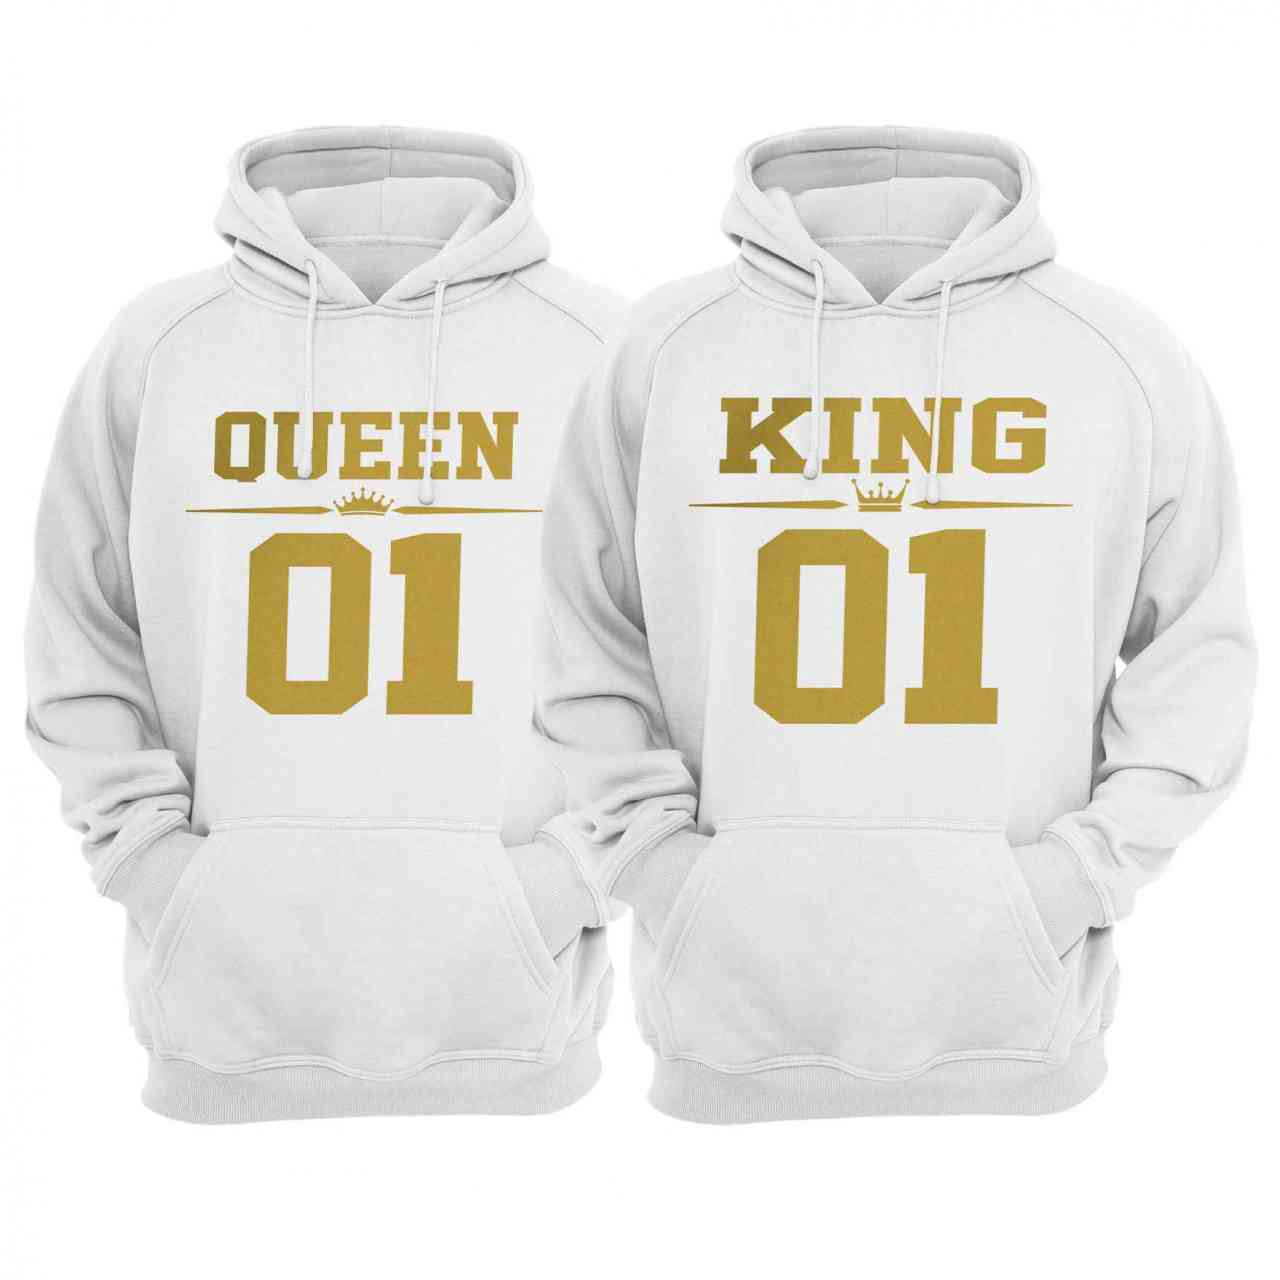 King Queen Partnerlook Hoodie | Pulli | Paar